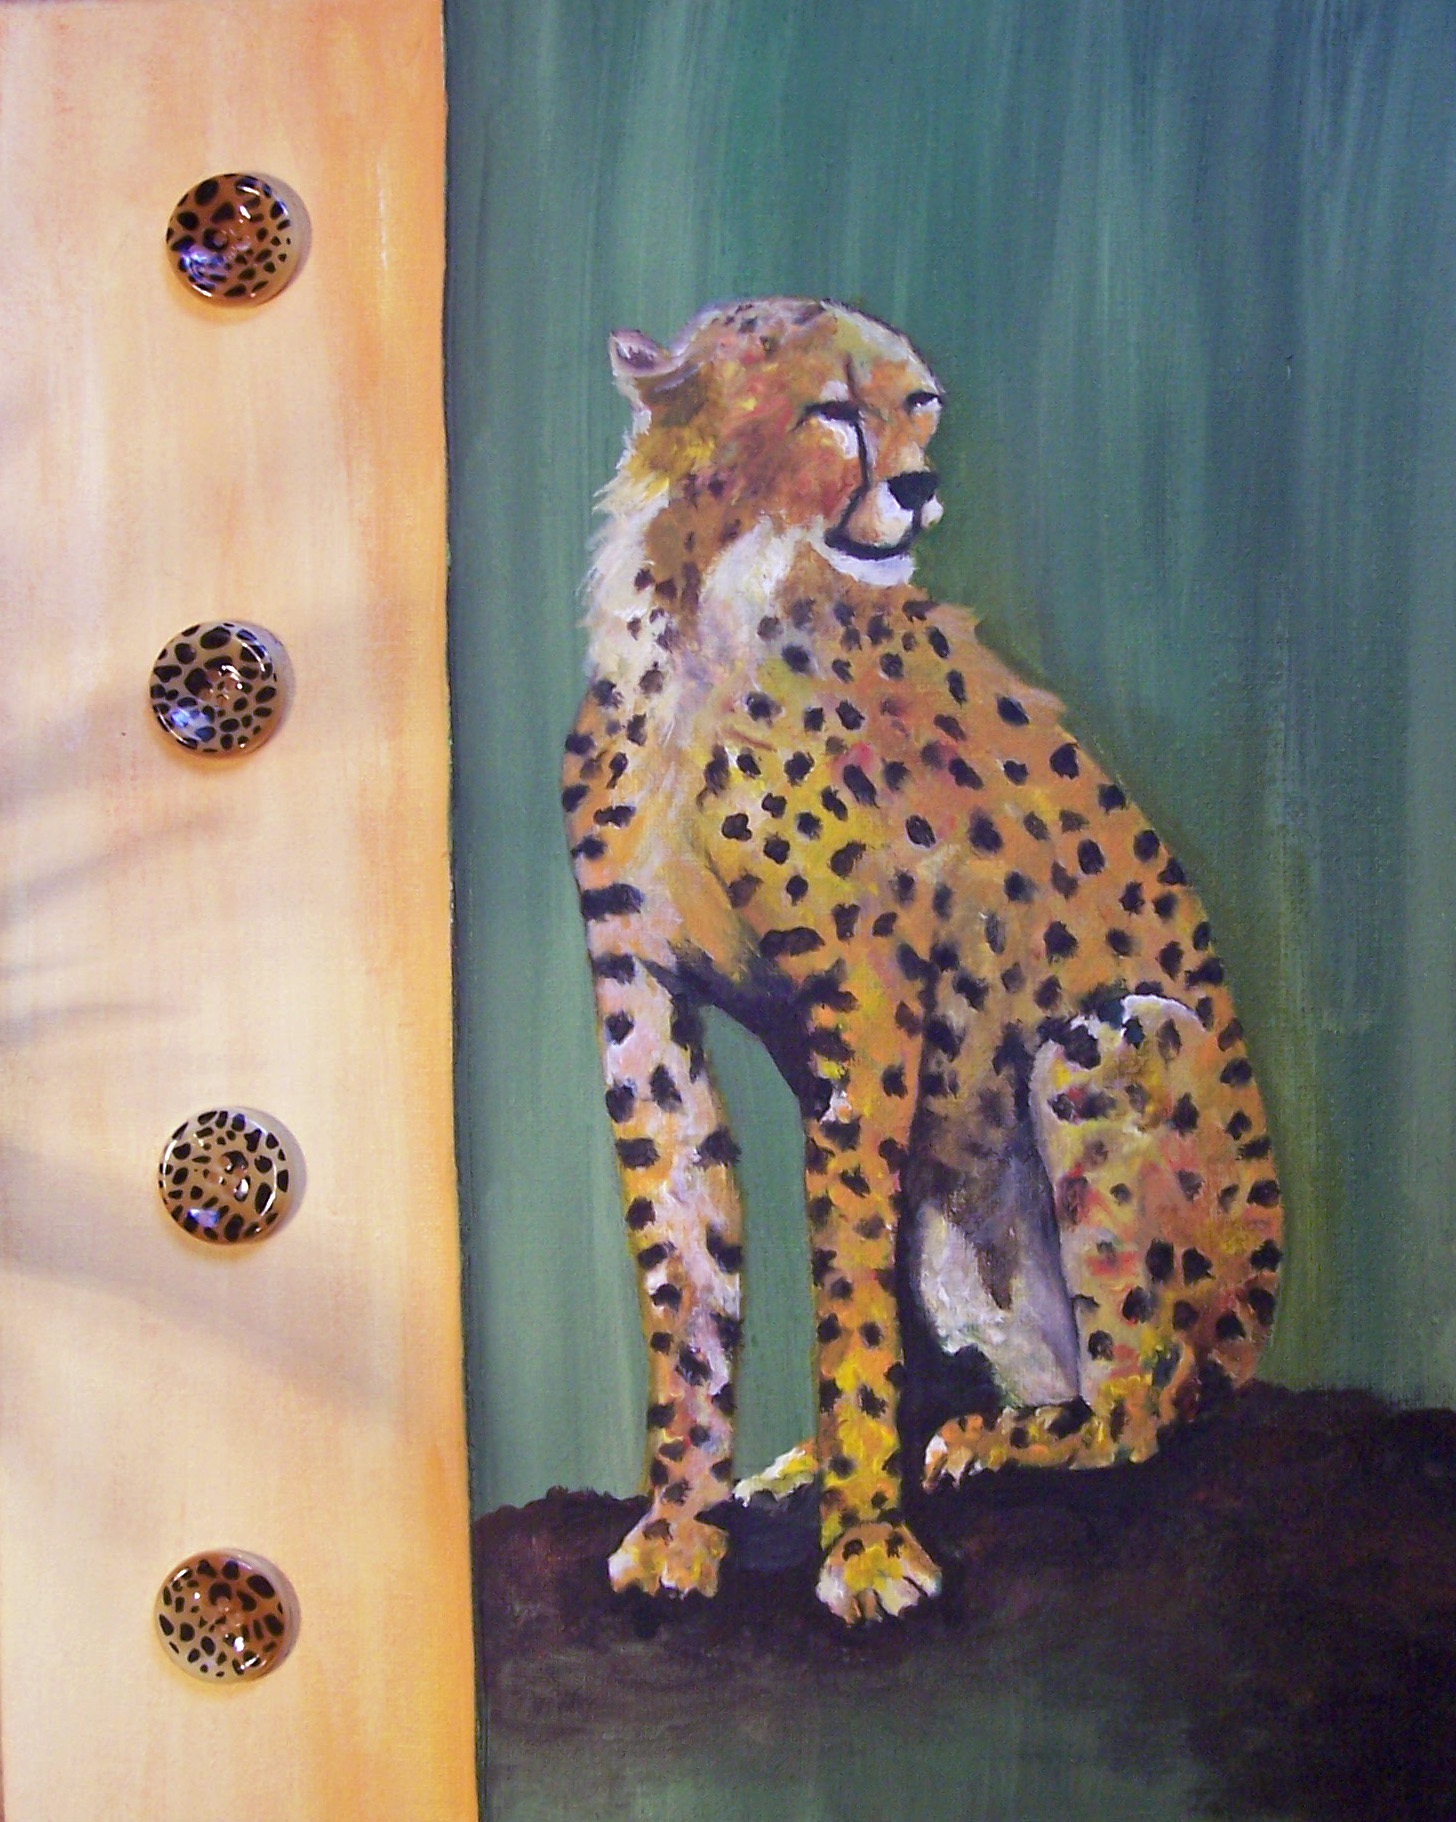 DESCRIPTION: Cheetah